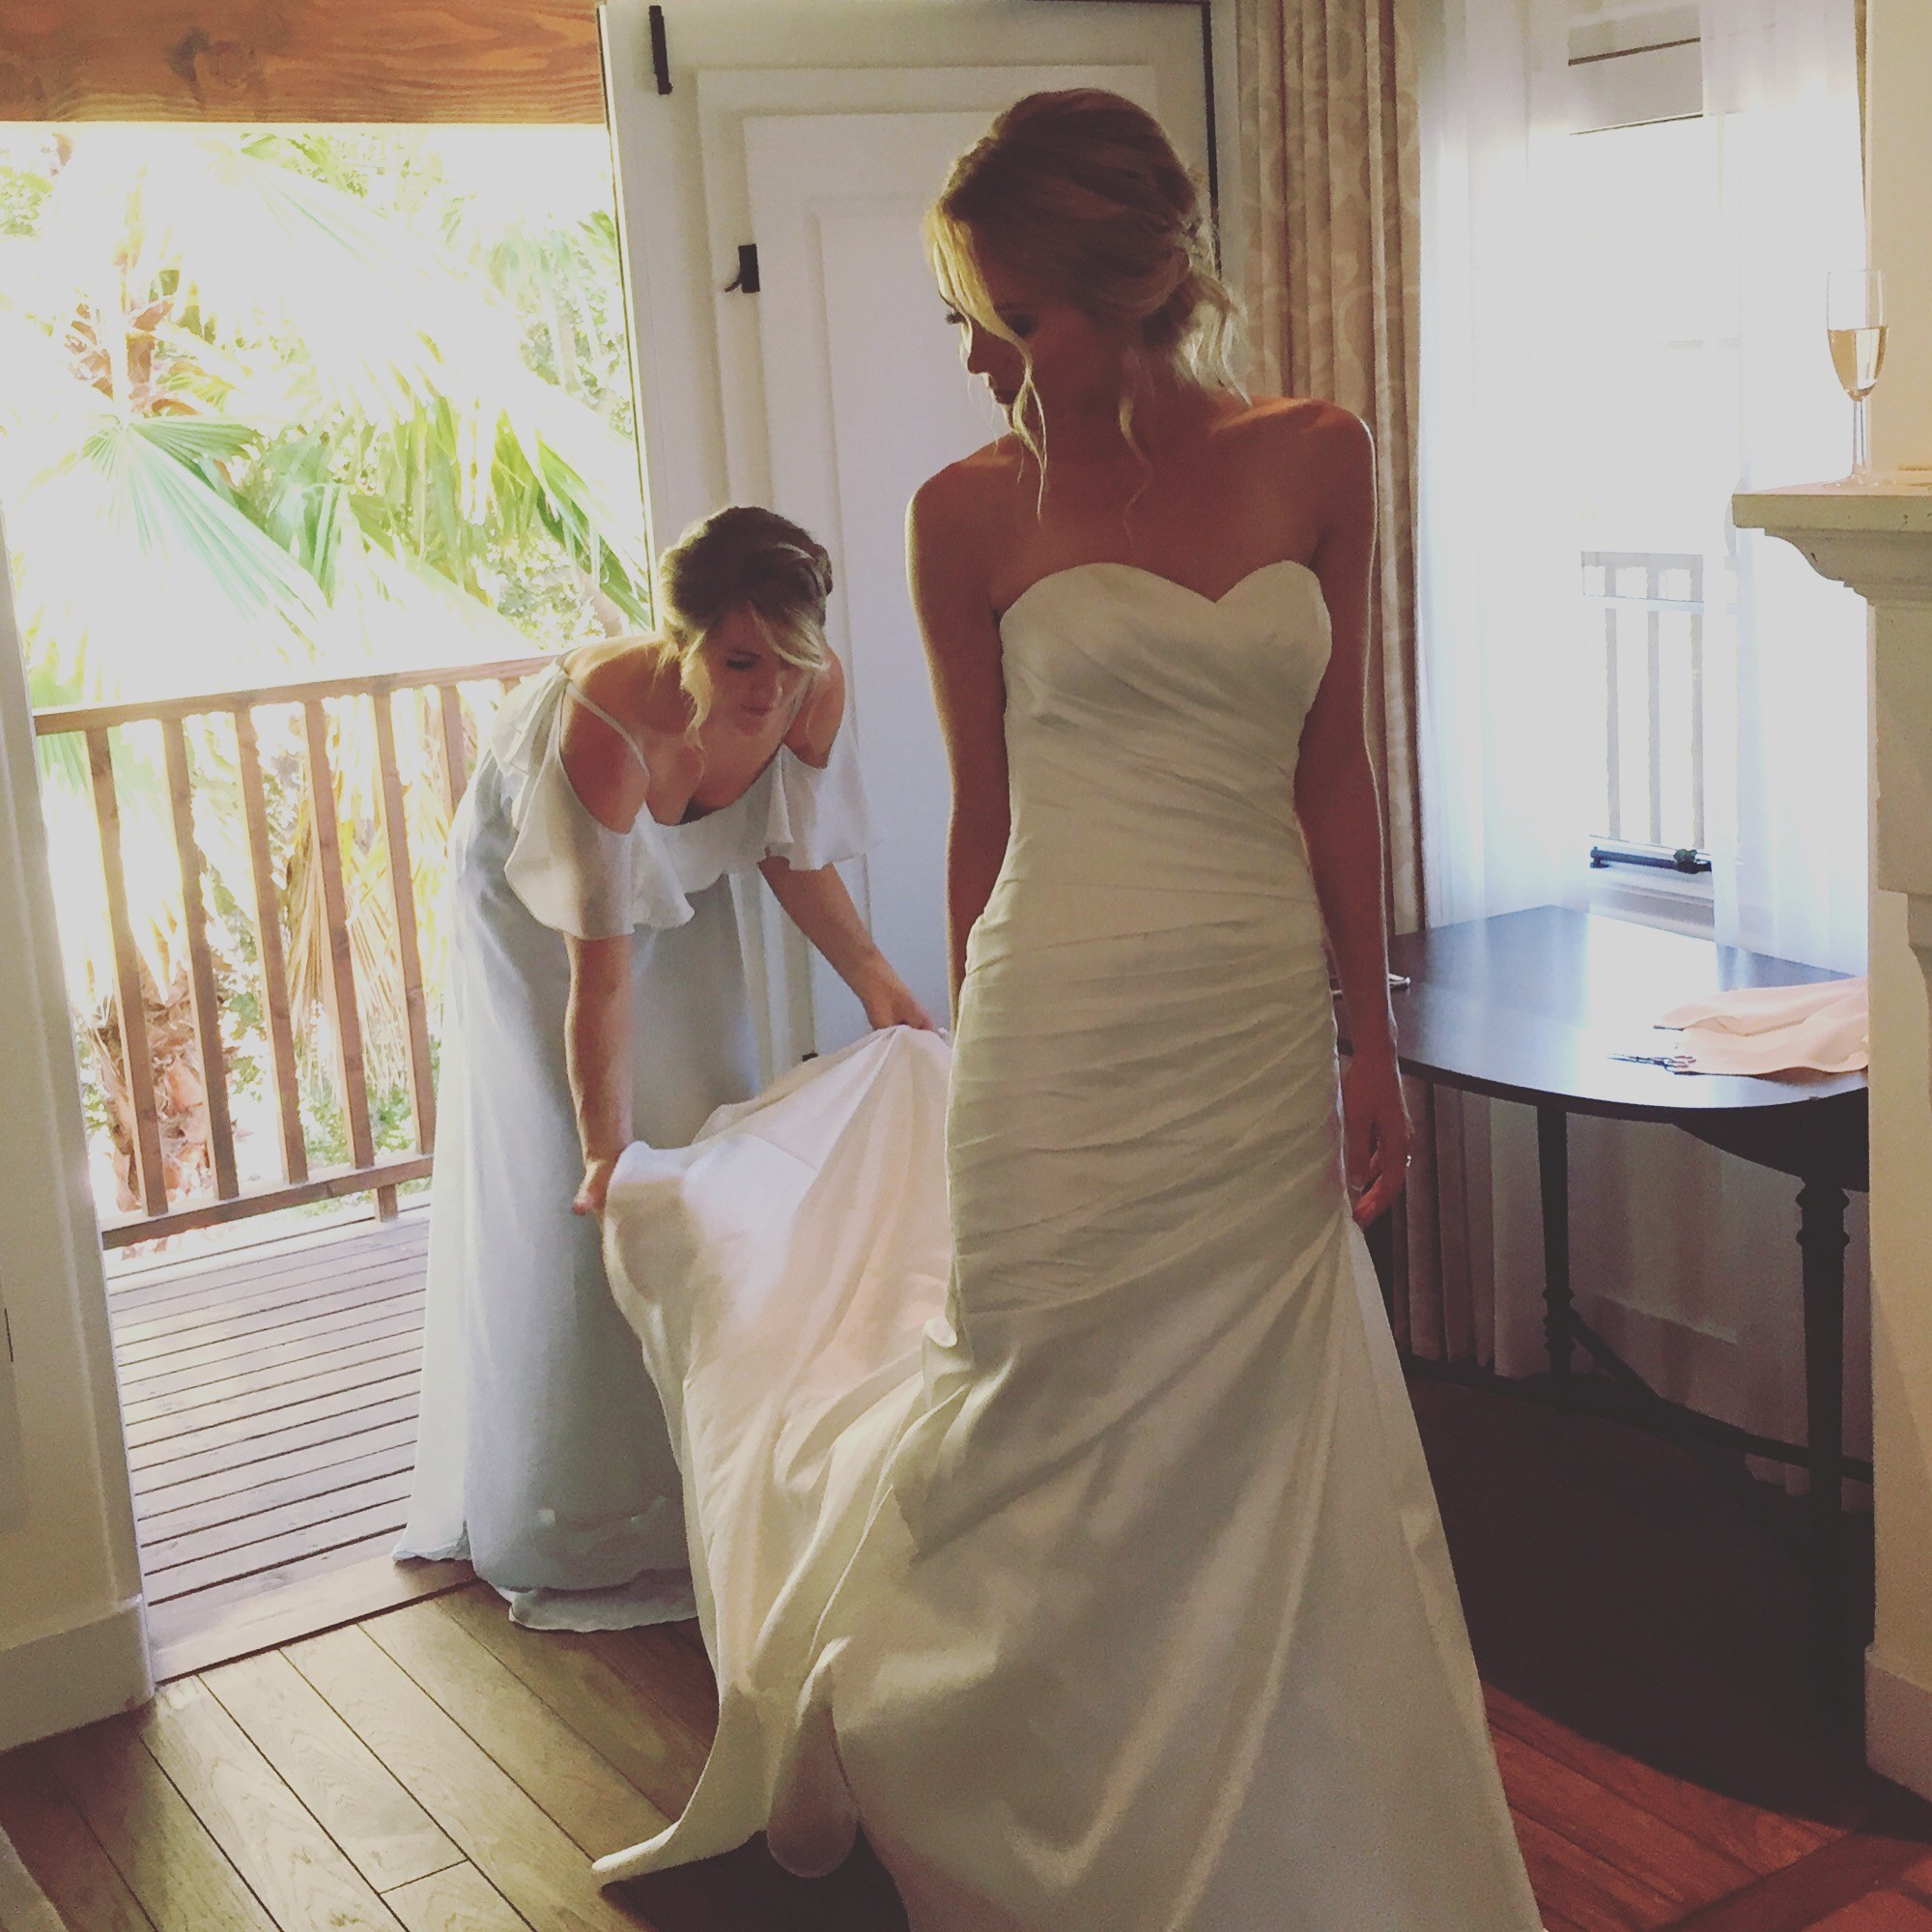 My beautiful girls as maid of honor and bride in the bridal suite pre-ceremony.  I took this photo in a private moment with just the three of us on the cusp of a new and wonderful chapter in our lives.